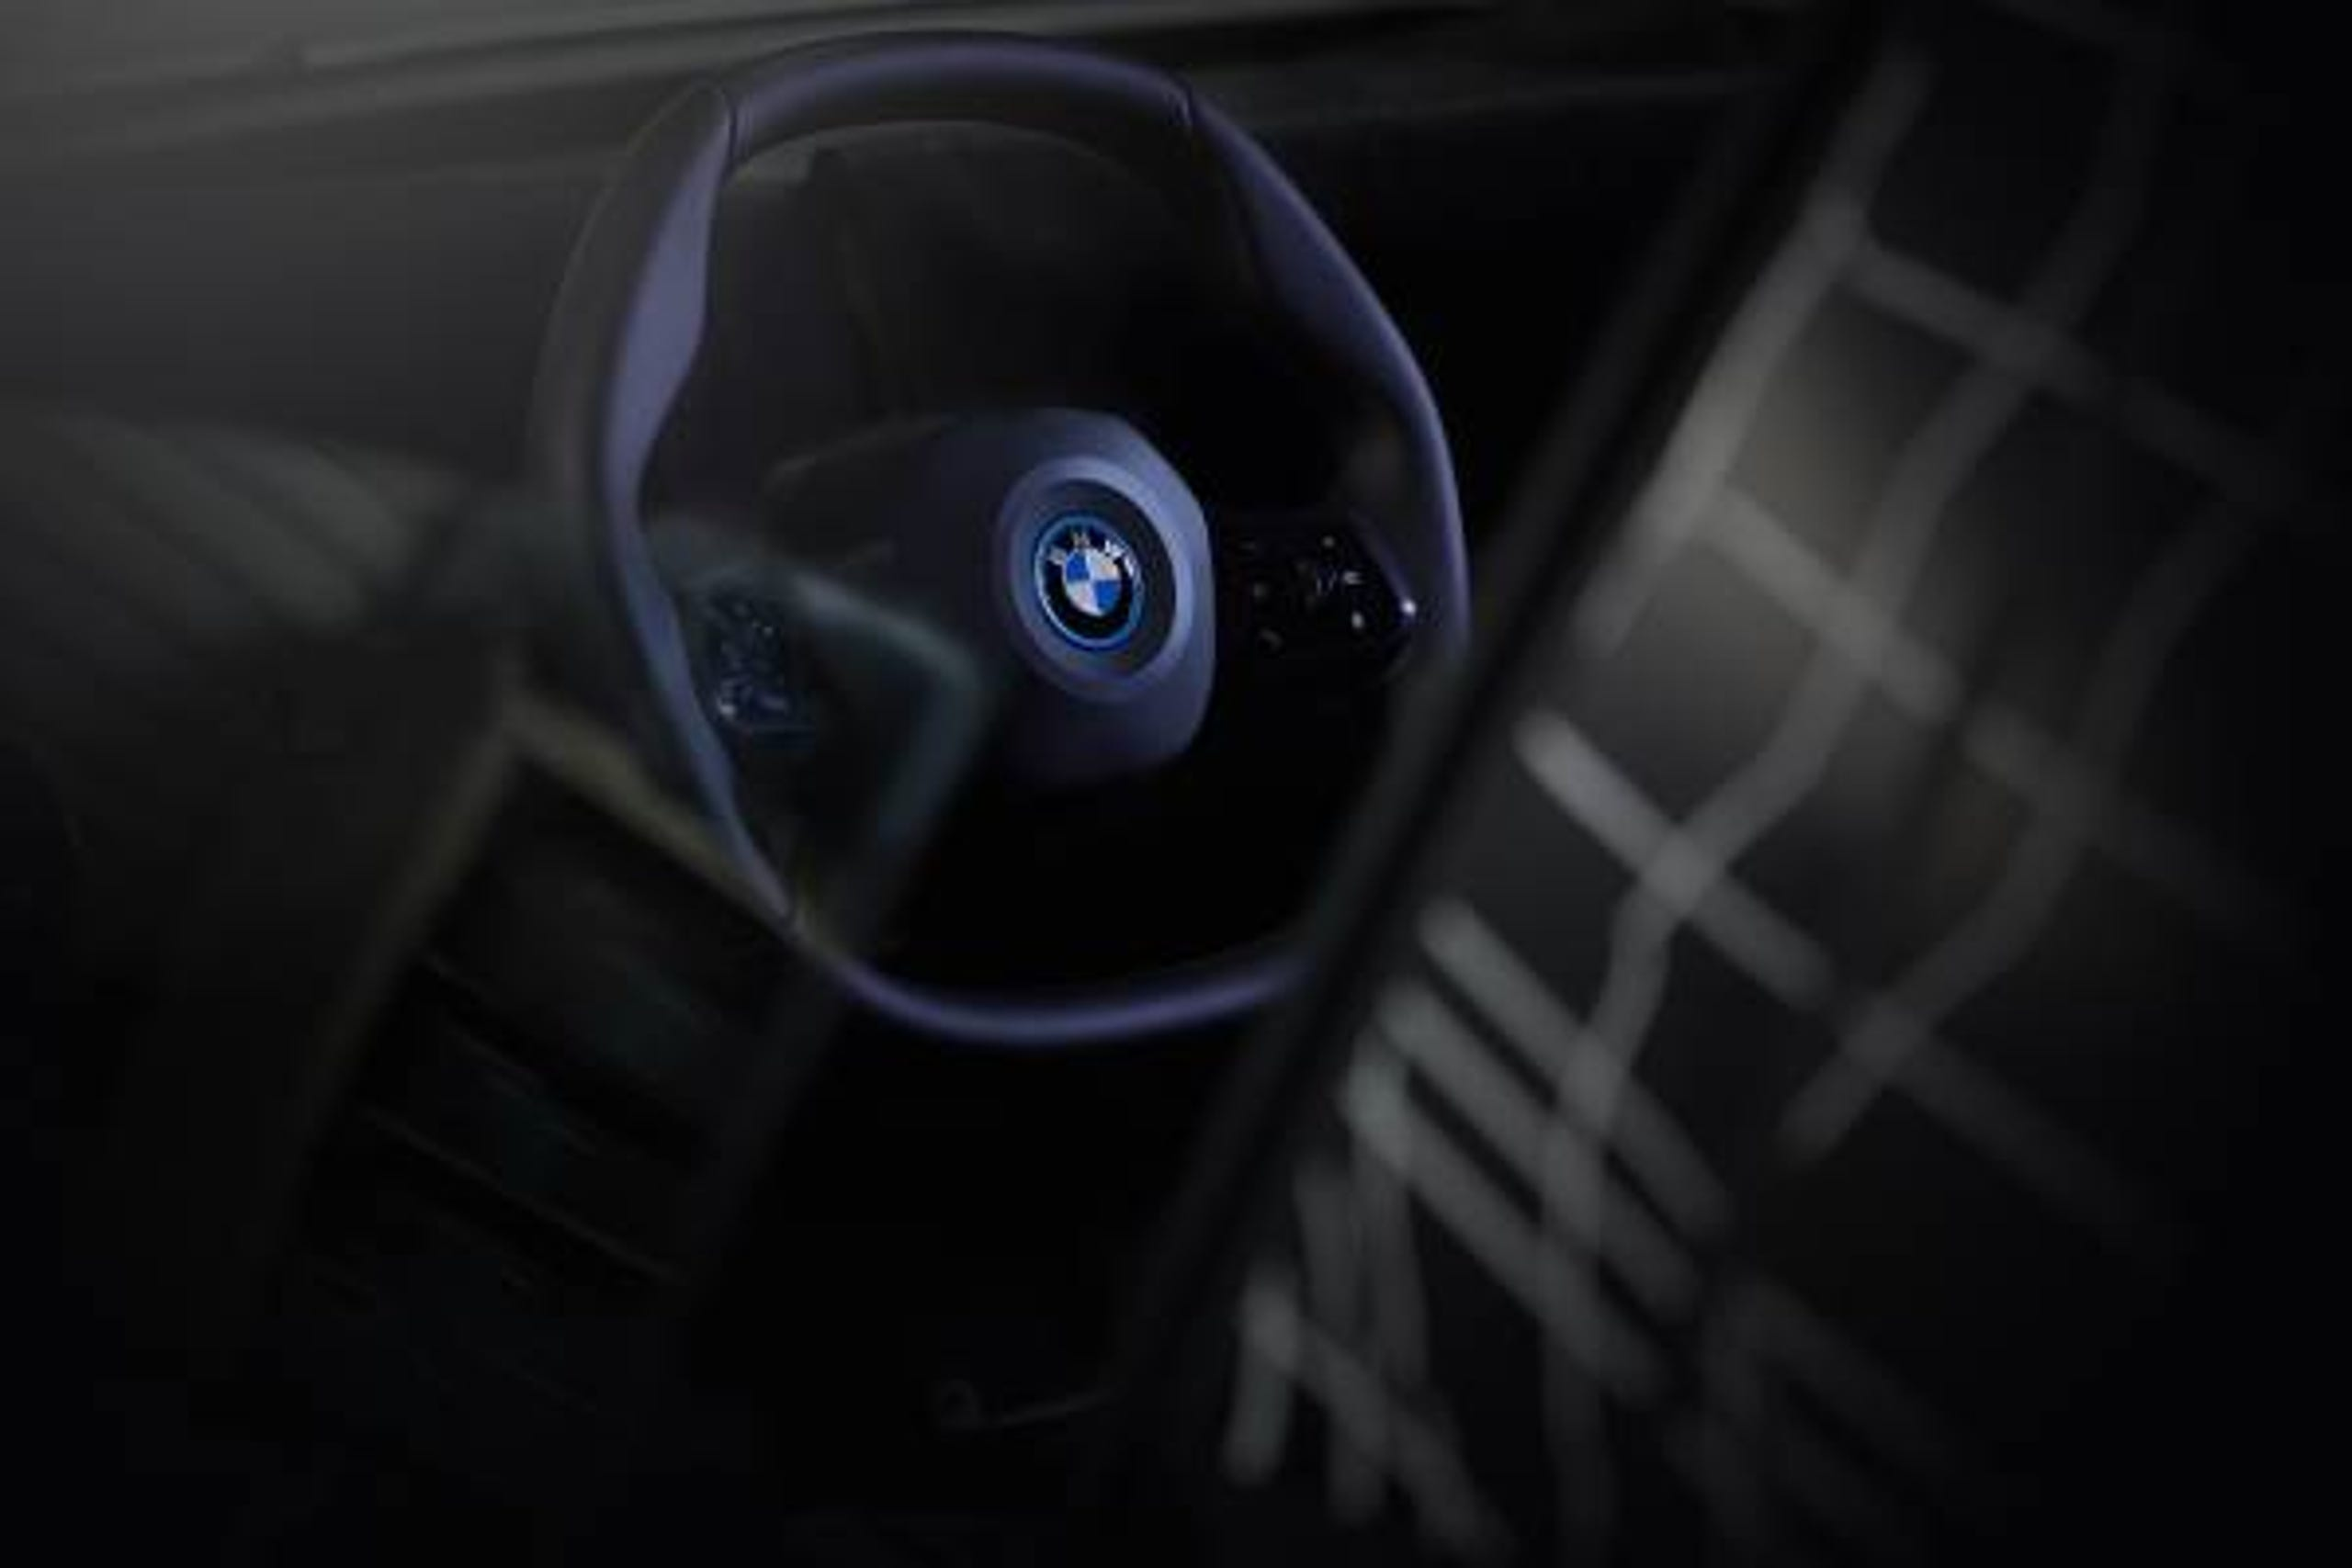 On July 22, BMW revealed a moody teaser image featuring the steering wheel of its upcoming electric, automated flagship. The iNext EV's steering wheel doesn't come in the typical circular shape, instead it's more polygonal which BMW claims is better designed to switch between highly-autonomous and active-steering modes. The German automaker is far from the first to experiment with out-of-the-box steering shapes. Take a look at these other notable unusual, cutting-edge steering wheels found in cars and trucks.